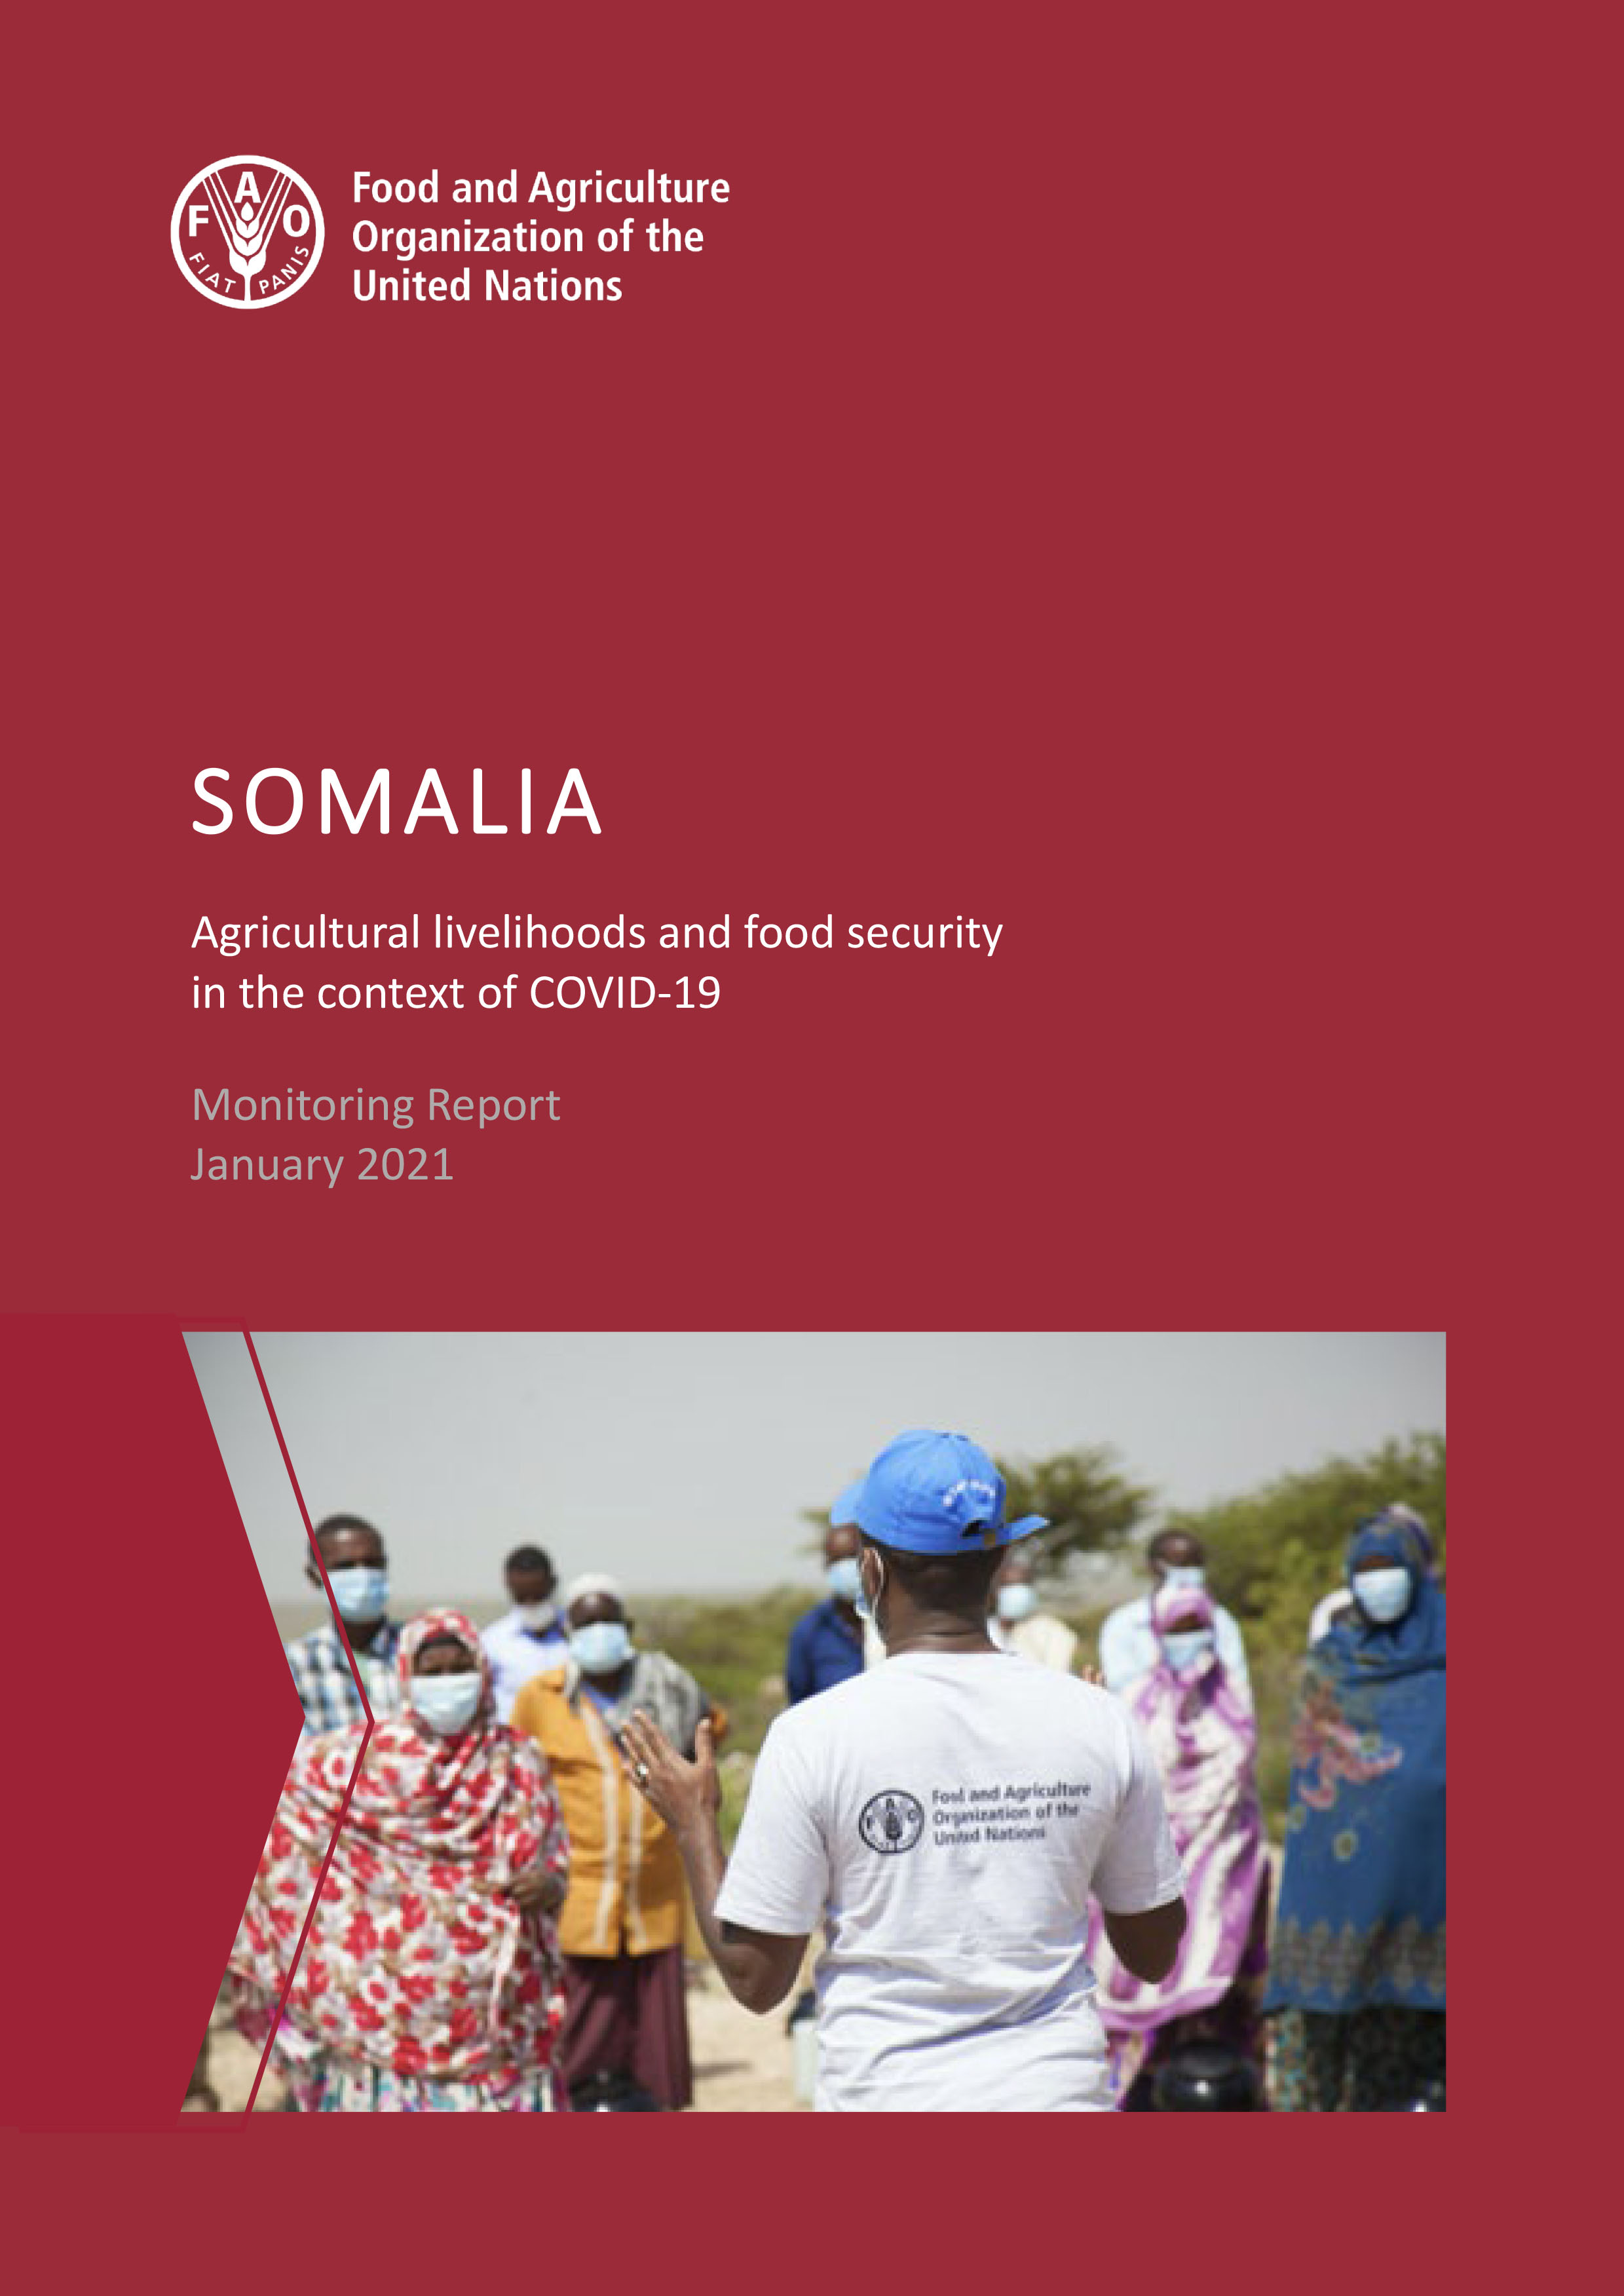 Somalia: Agricultural livelihoods and food security in the context of COVID-19